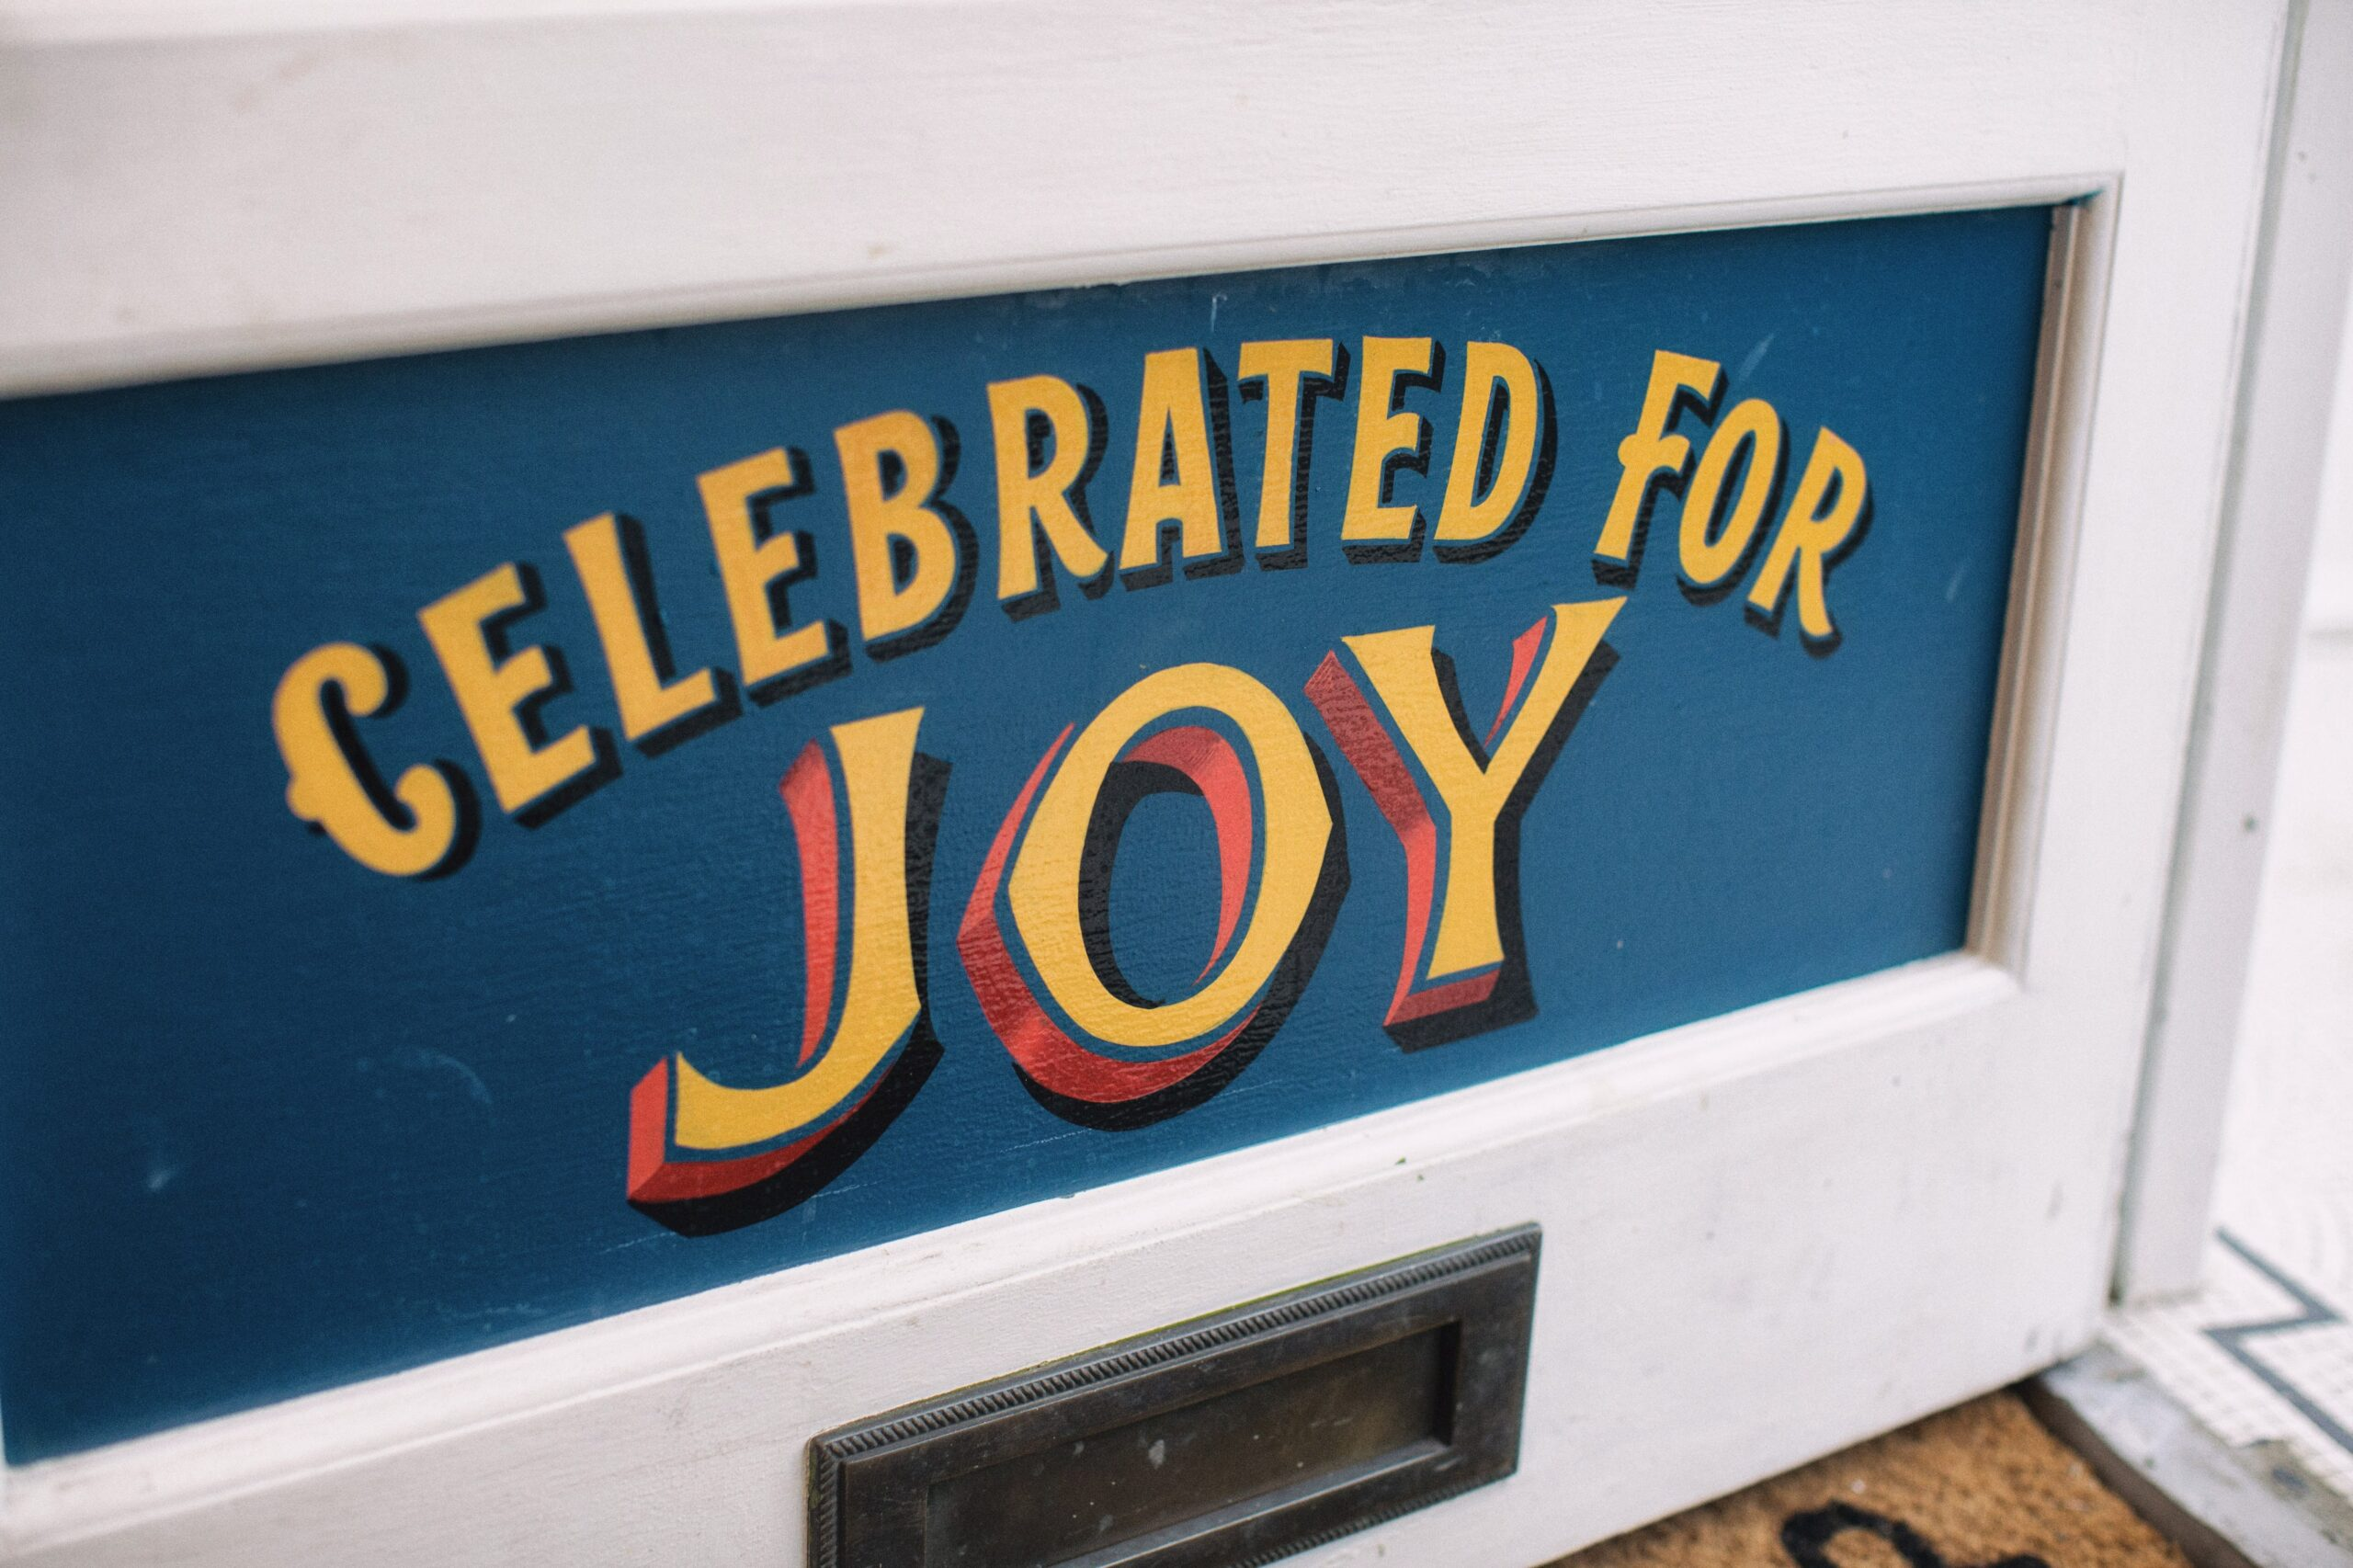 brilliant sign celebrated for joy